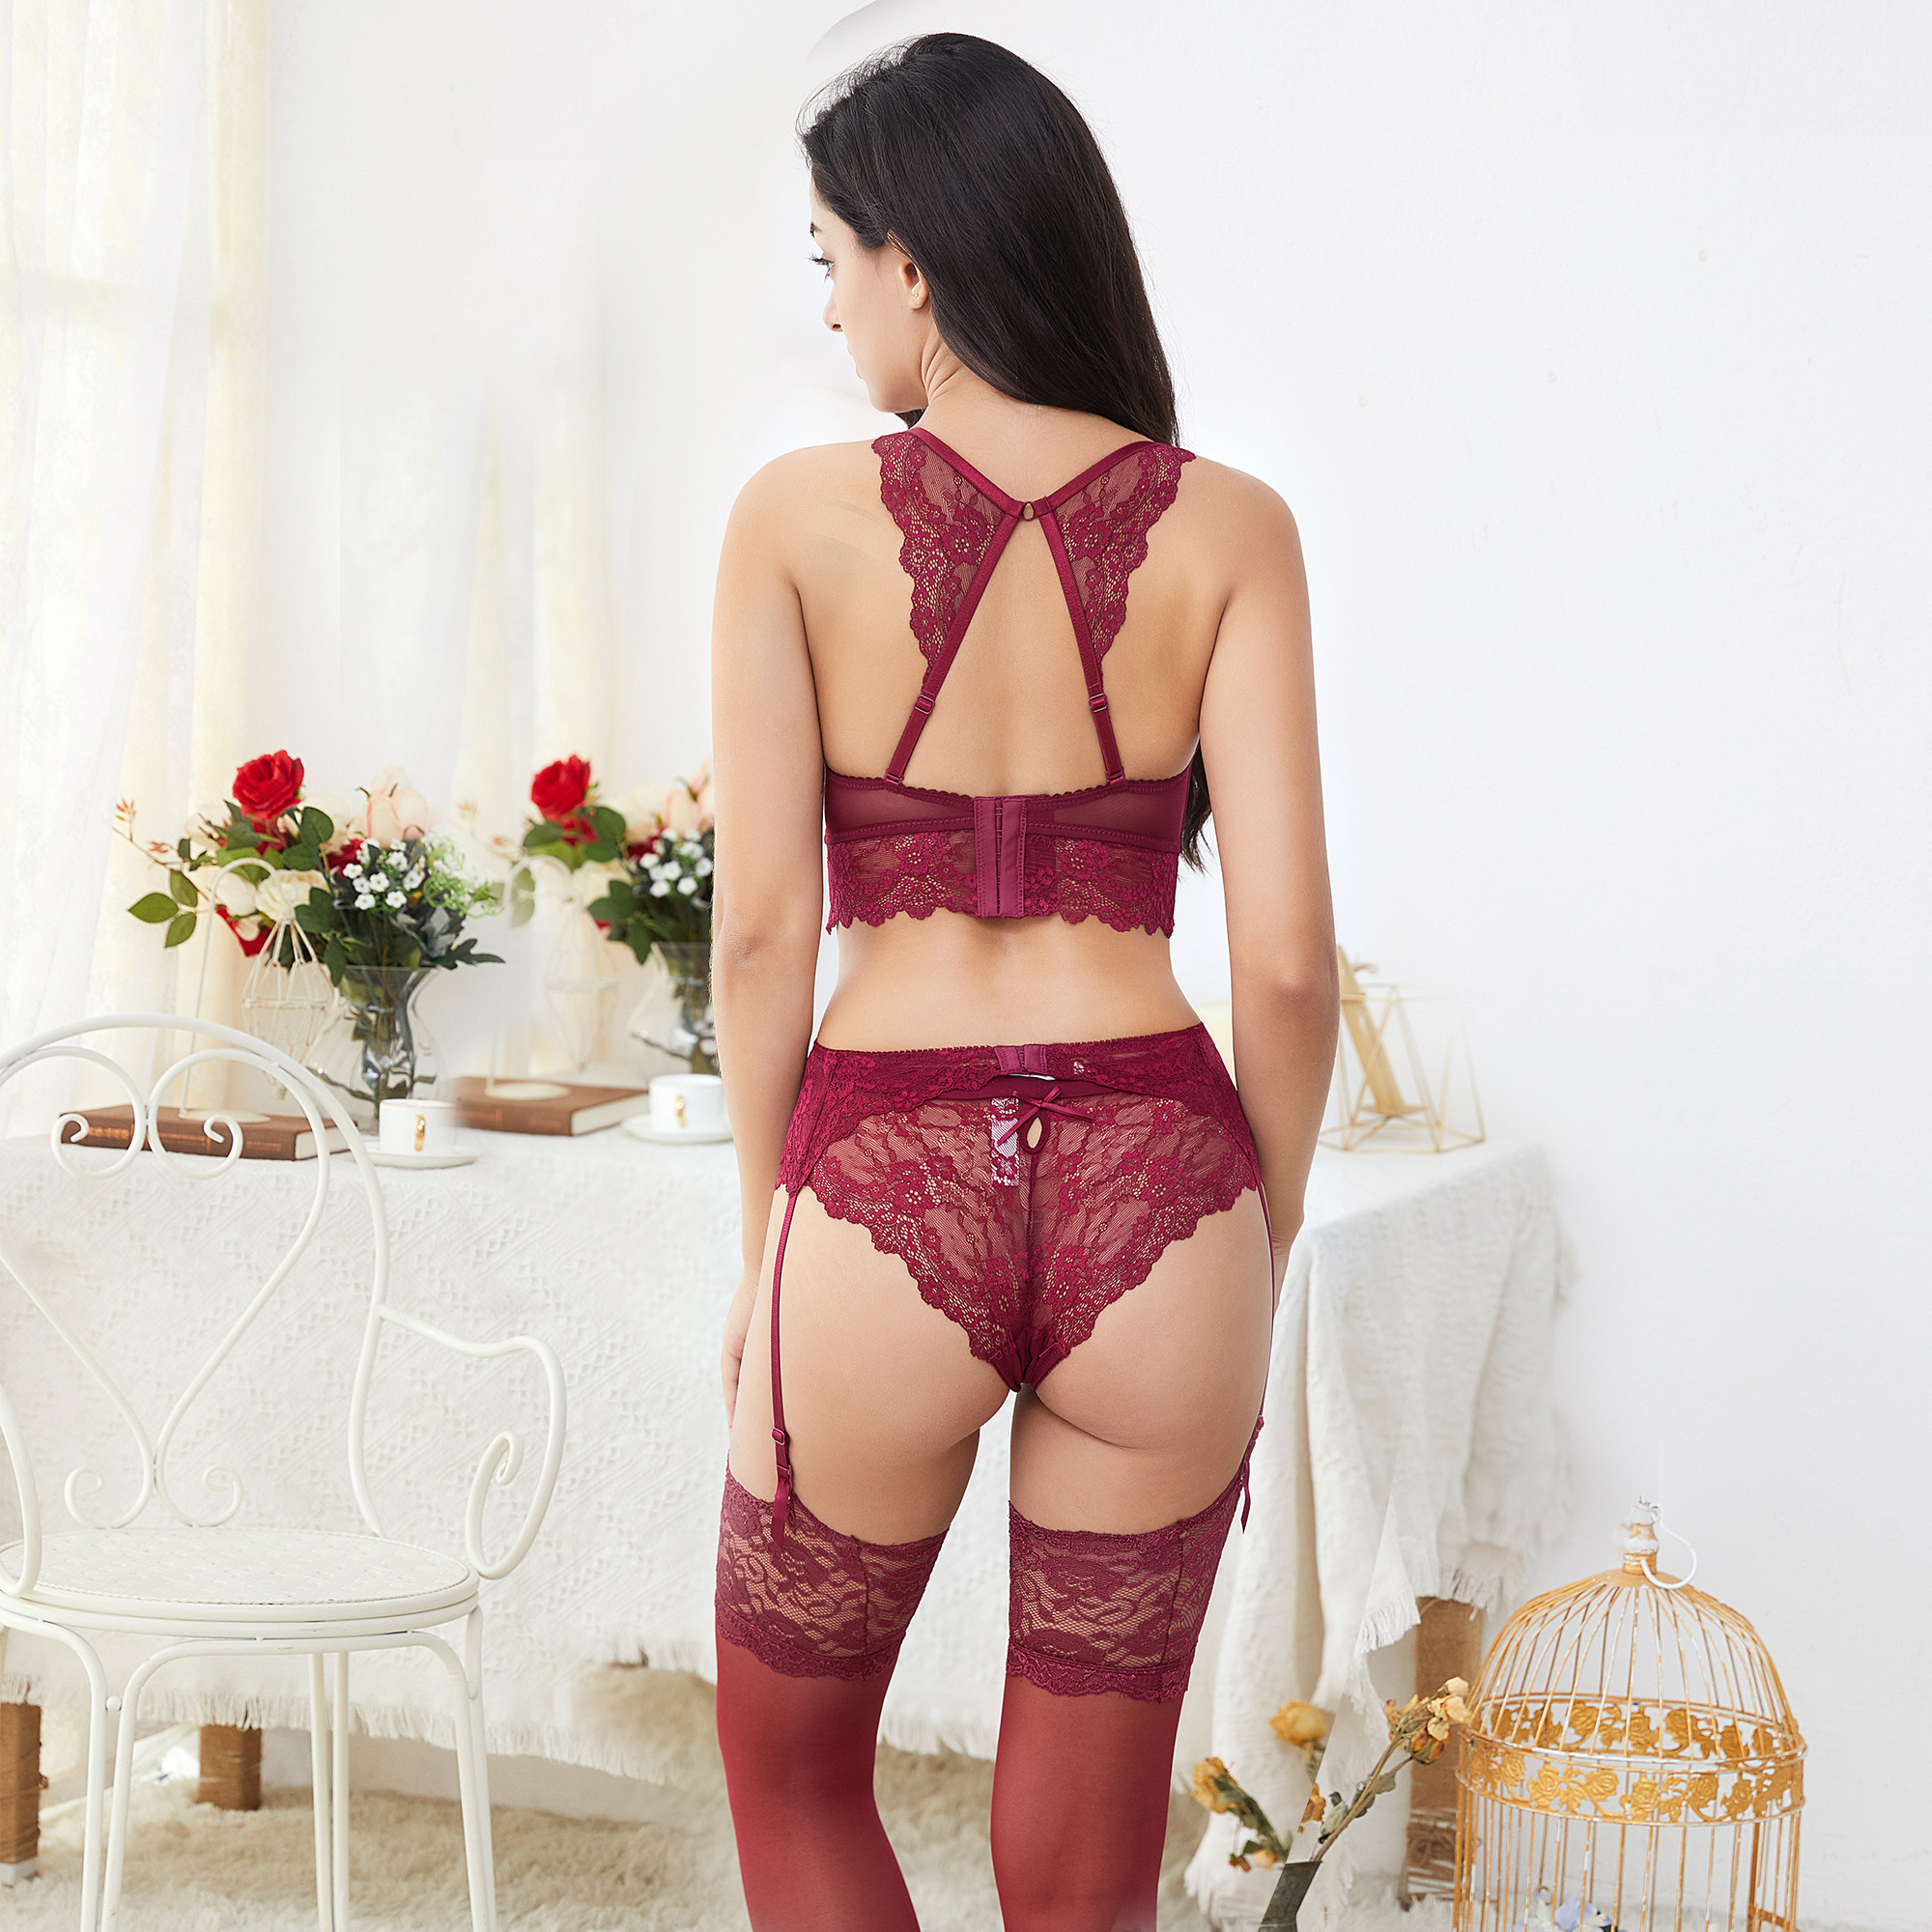 Sexy Lace Underwear Set Robe+Bra+ Panties+ Stockings +Y-line Straps +Thong 7 Piece For Lady